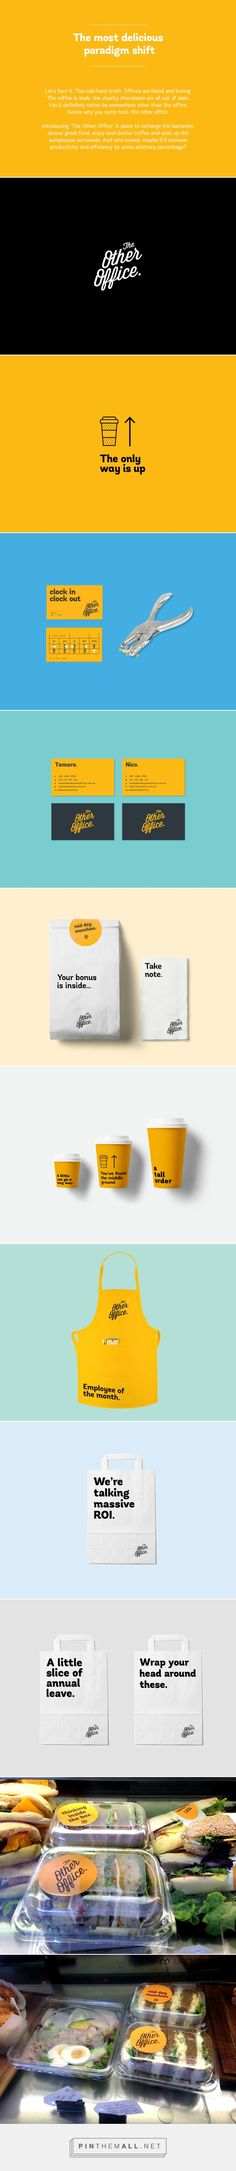 The Other Office identity packaging branding on Behance curated by Packaging Diva PD. Start your day right. A place to recharge the batteries, devour great food, enjoy even better coffee.